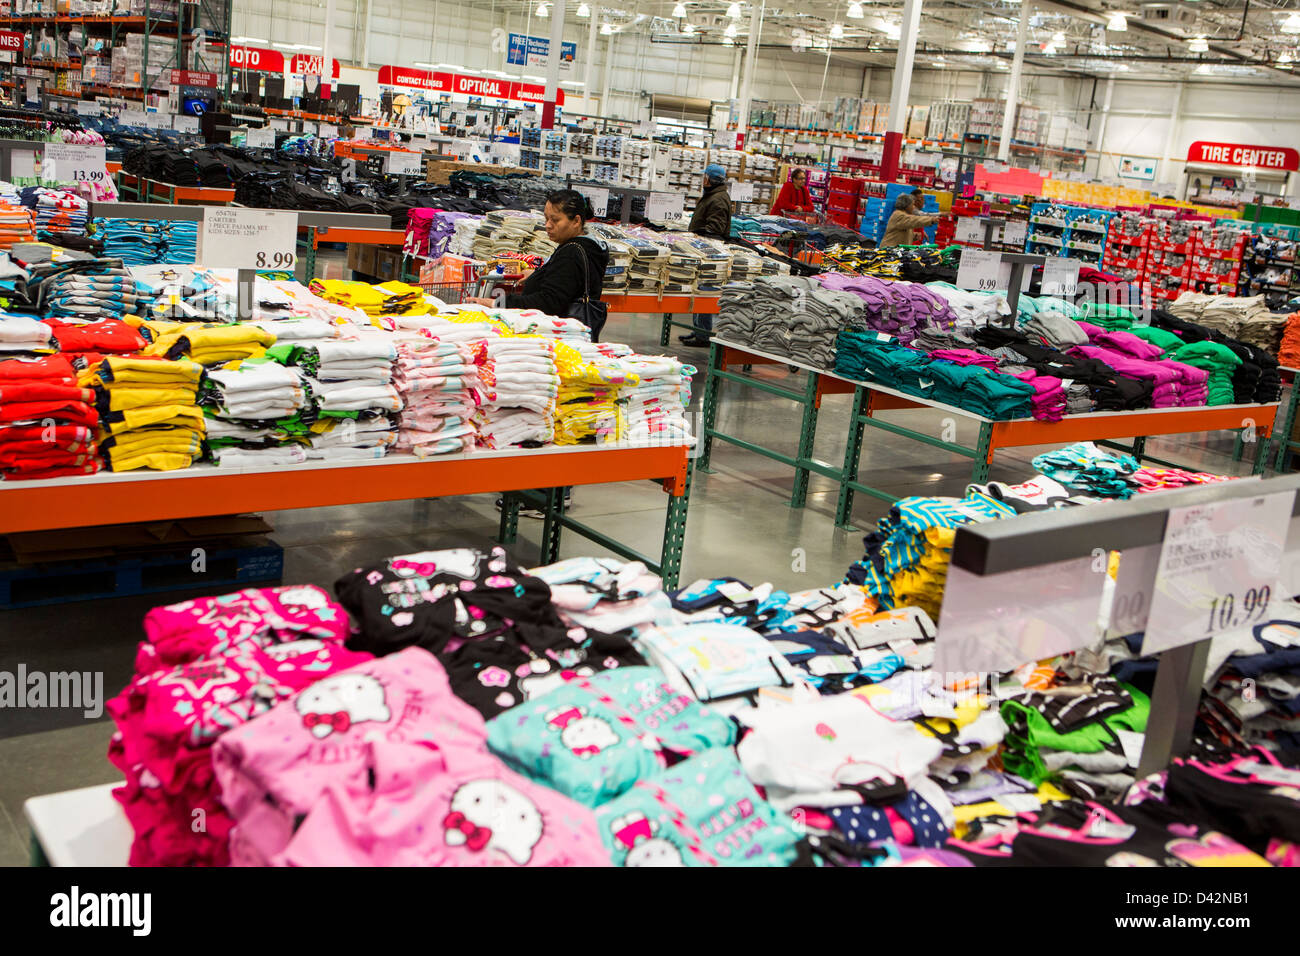 Customers shopping in the clothing section of a costco wholesale customers shopping in the clothing section of a costco wholesale warehouse club altavistaventures Images